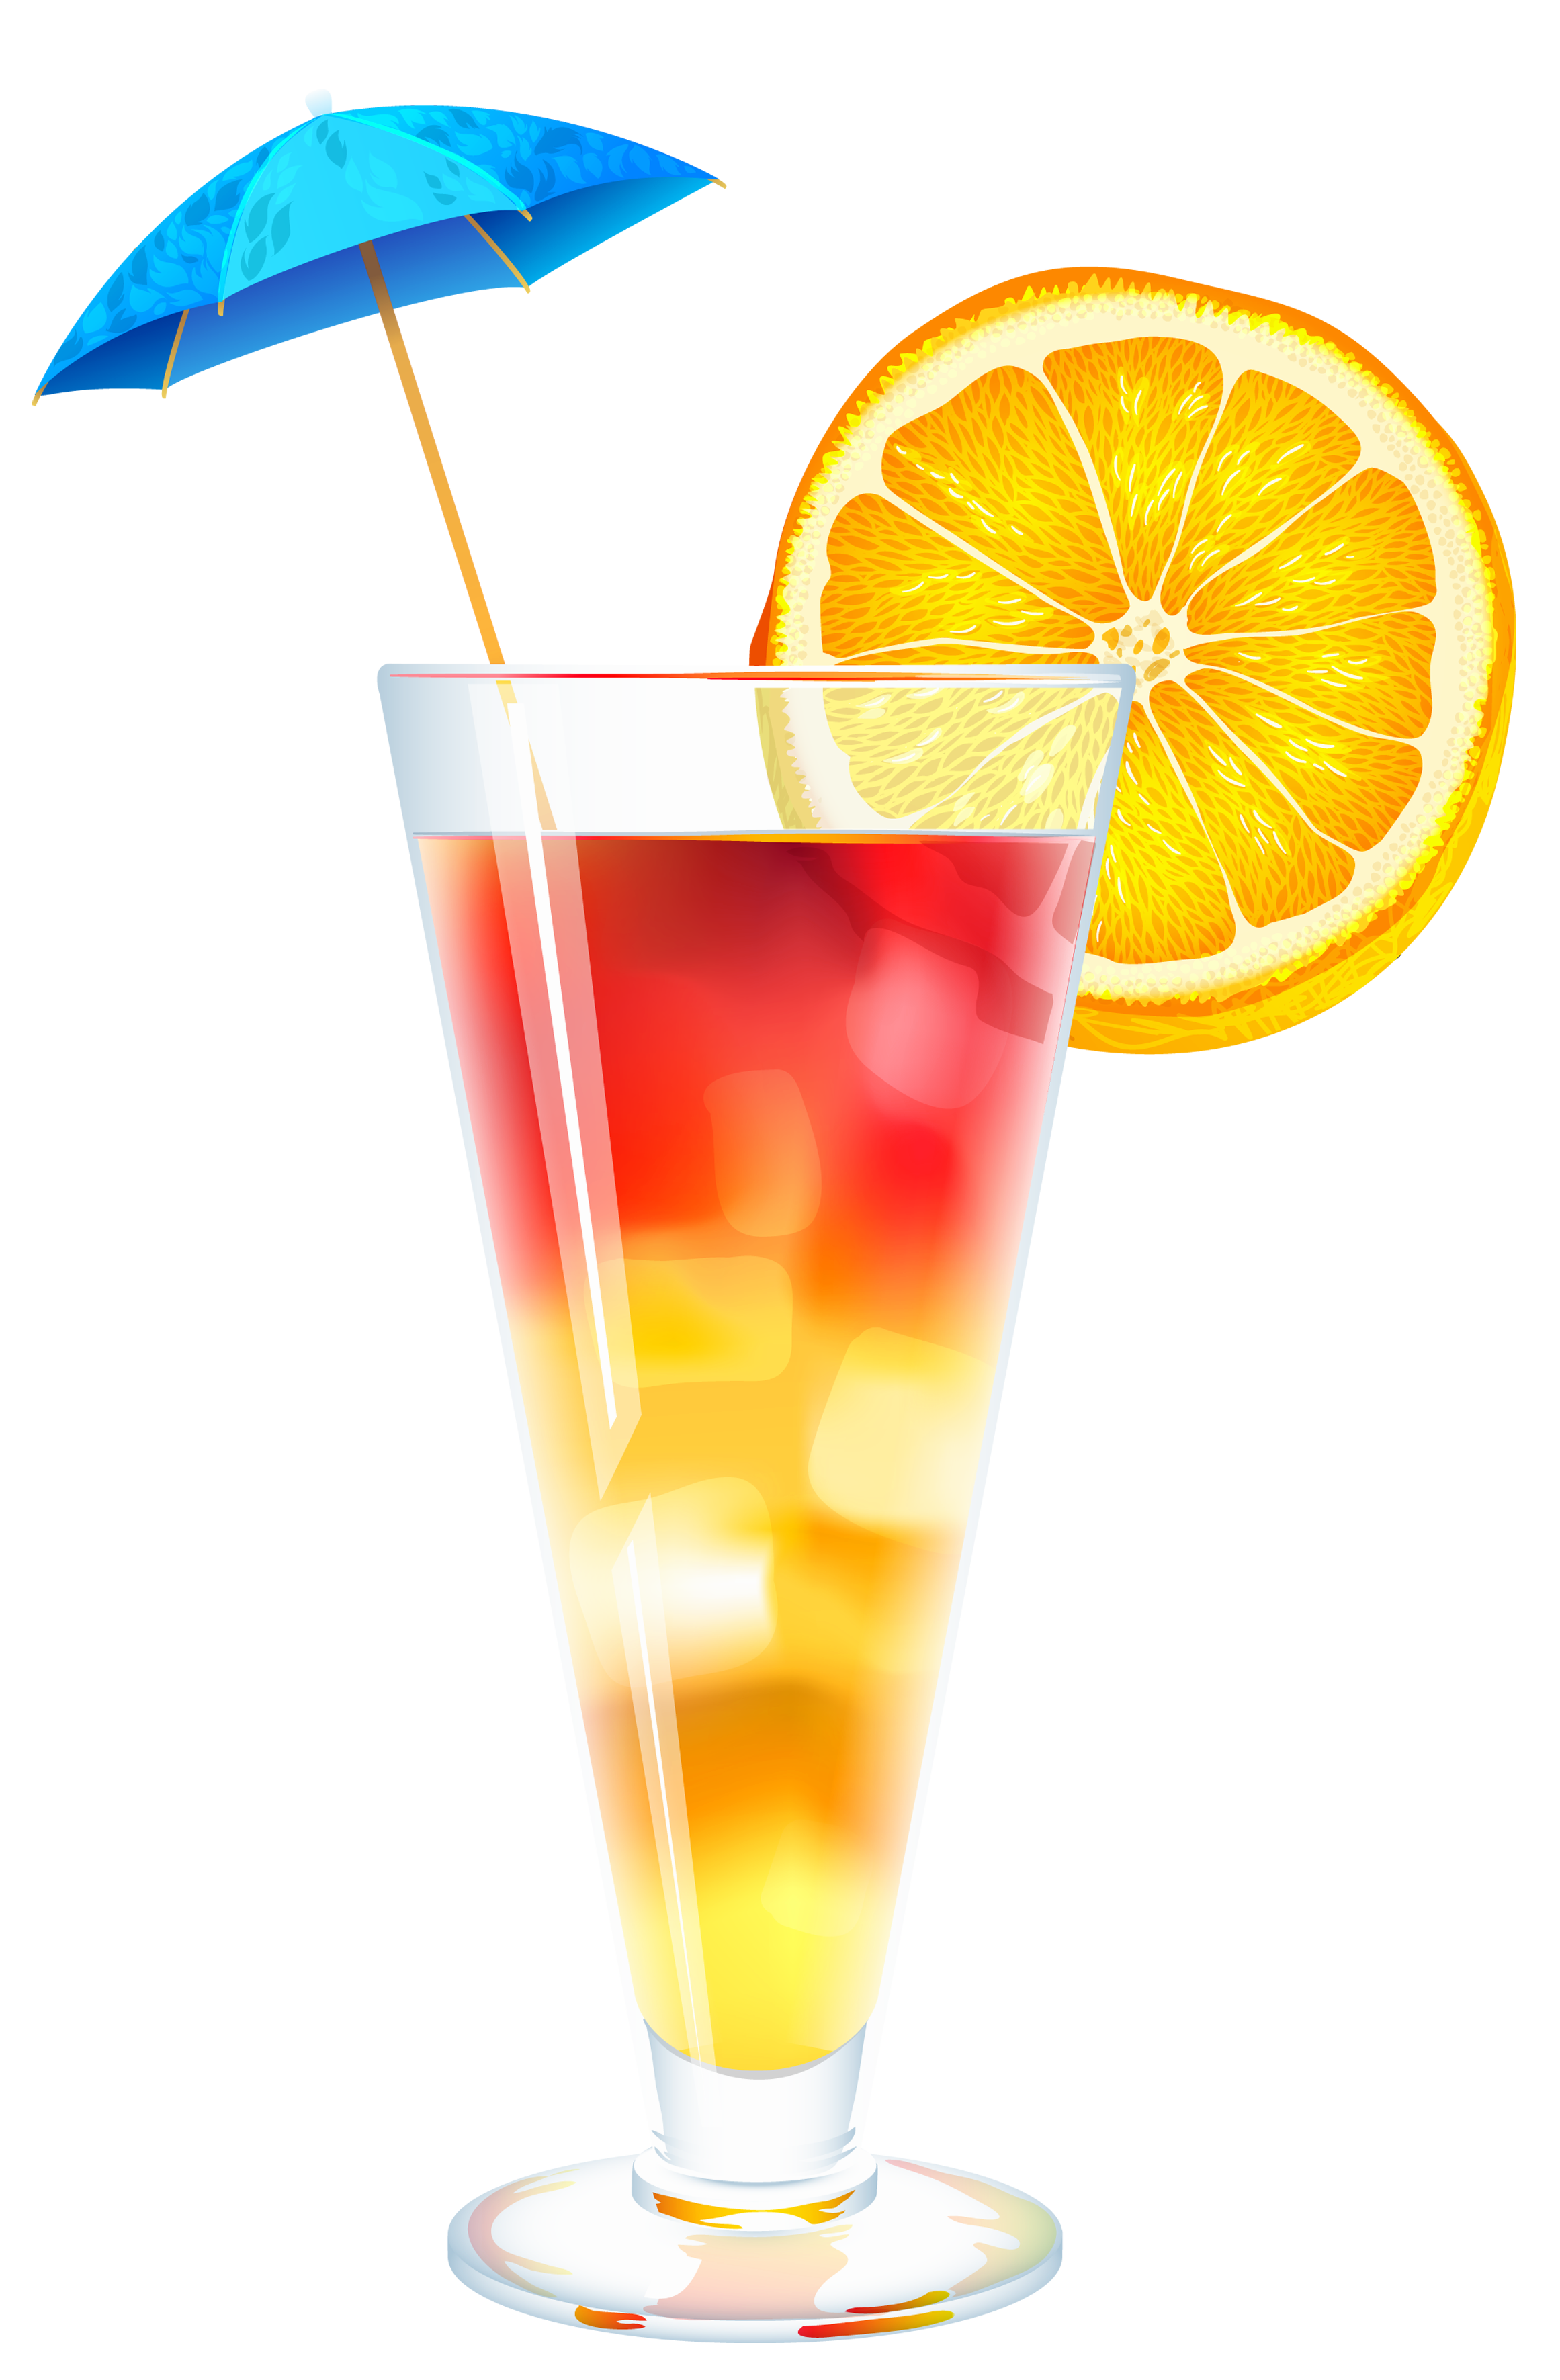 Cookbook clipart drink. Summer cocktail png image